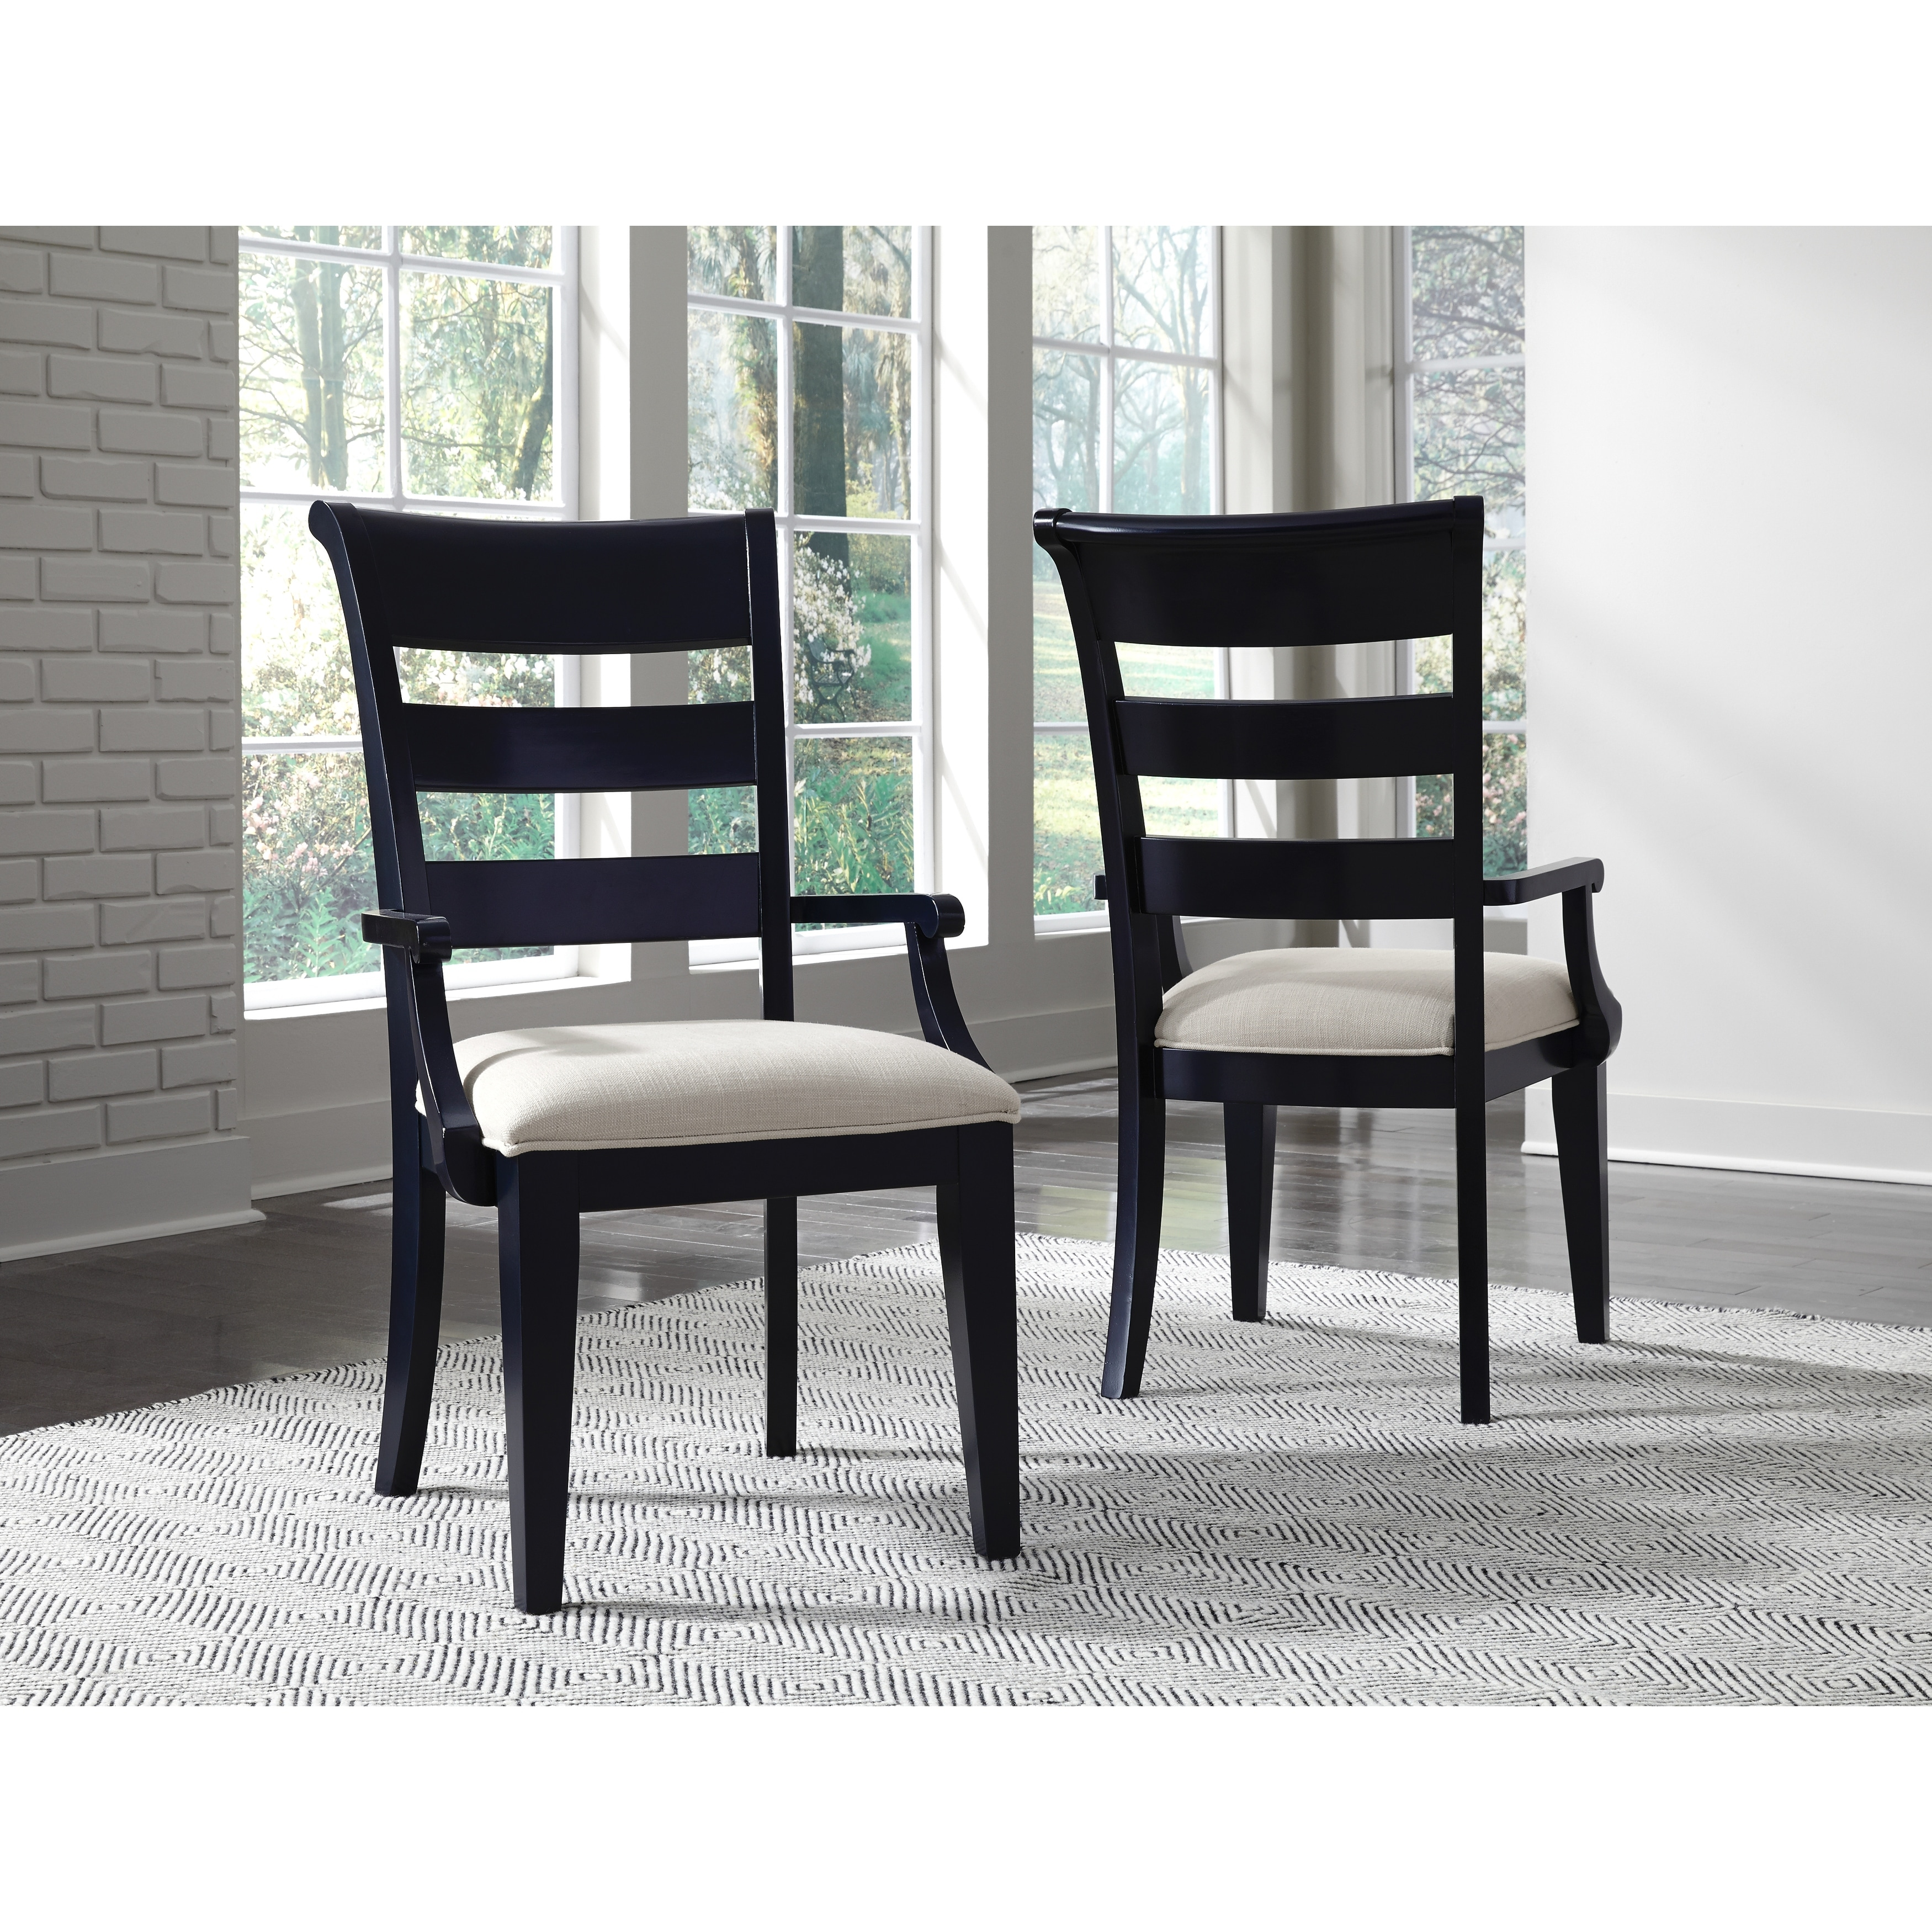 Breckenridge Upholstered Seat Slat Back Arm Chair Set Of 2 In Indigo Blue Finish Wood Overstock 32576395